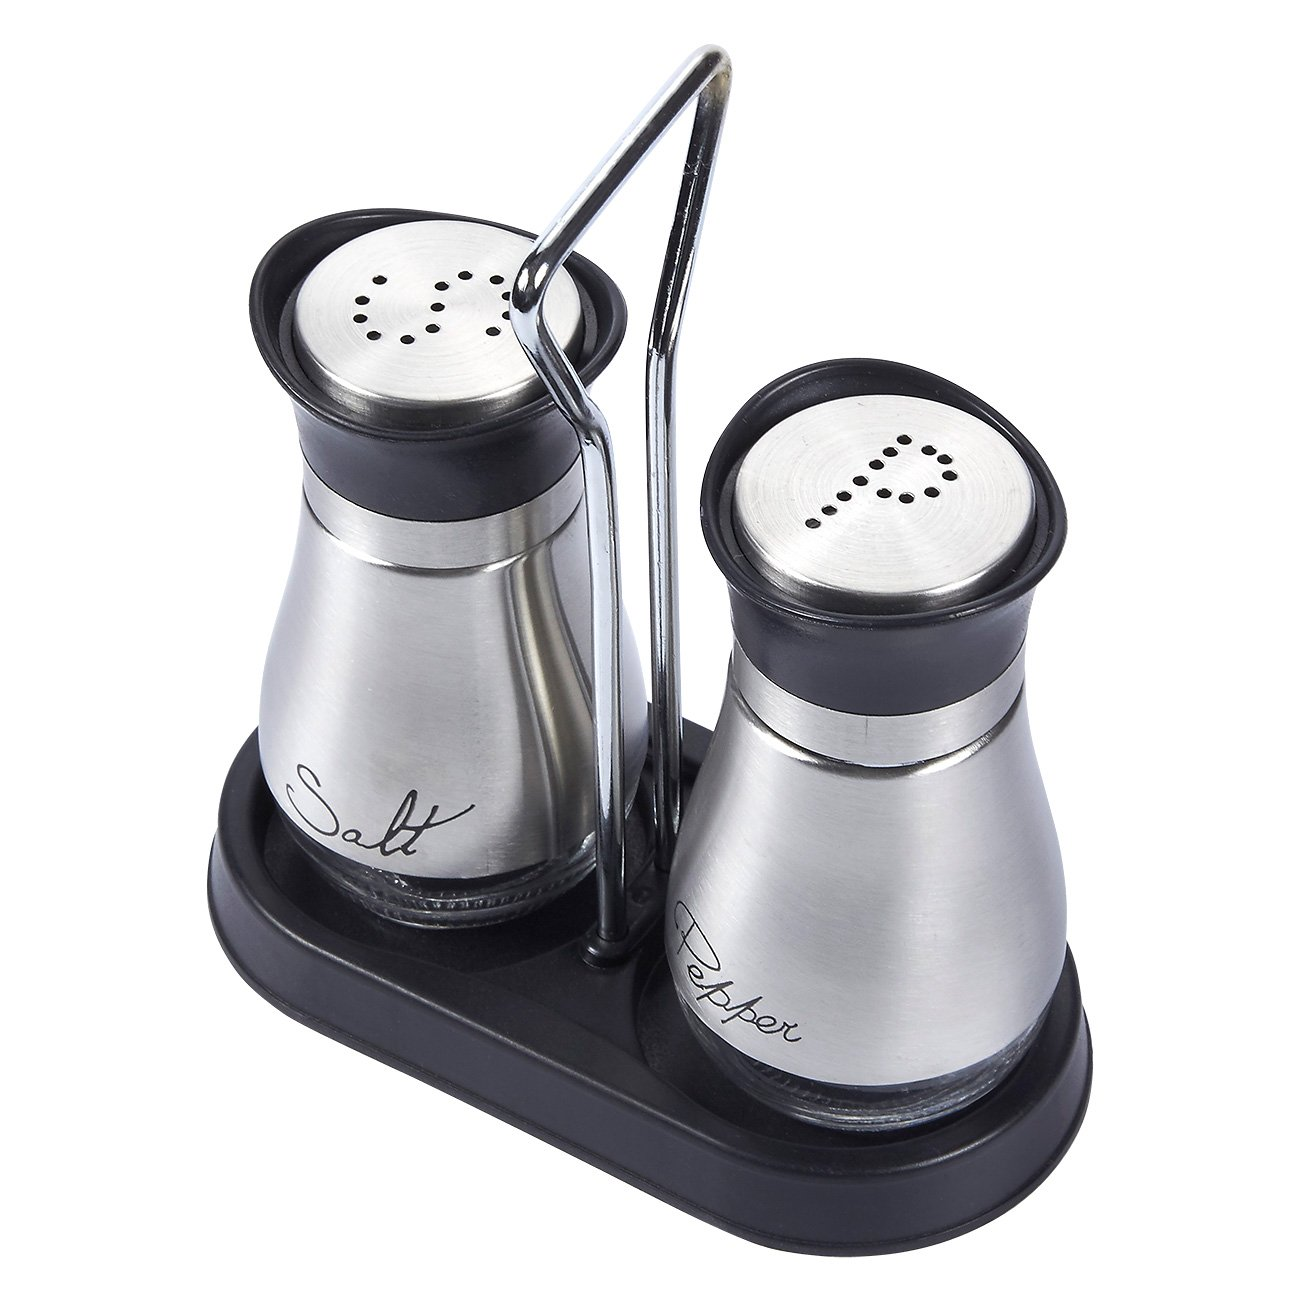 Salt and Pepper Shakers Set - High Grade Stainless Steel with Glass Bottom and 4' Stand - 4'' x 6'' x 2'', 4 oz. by Juvale (Image #6)